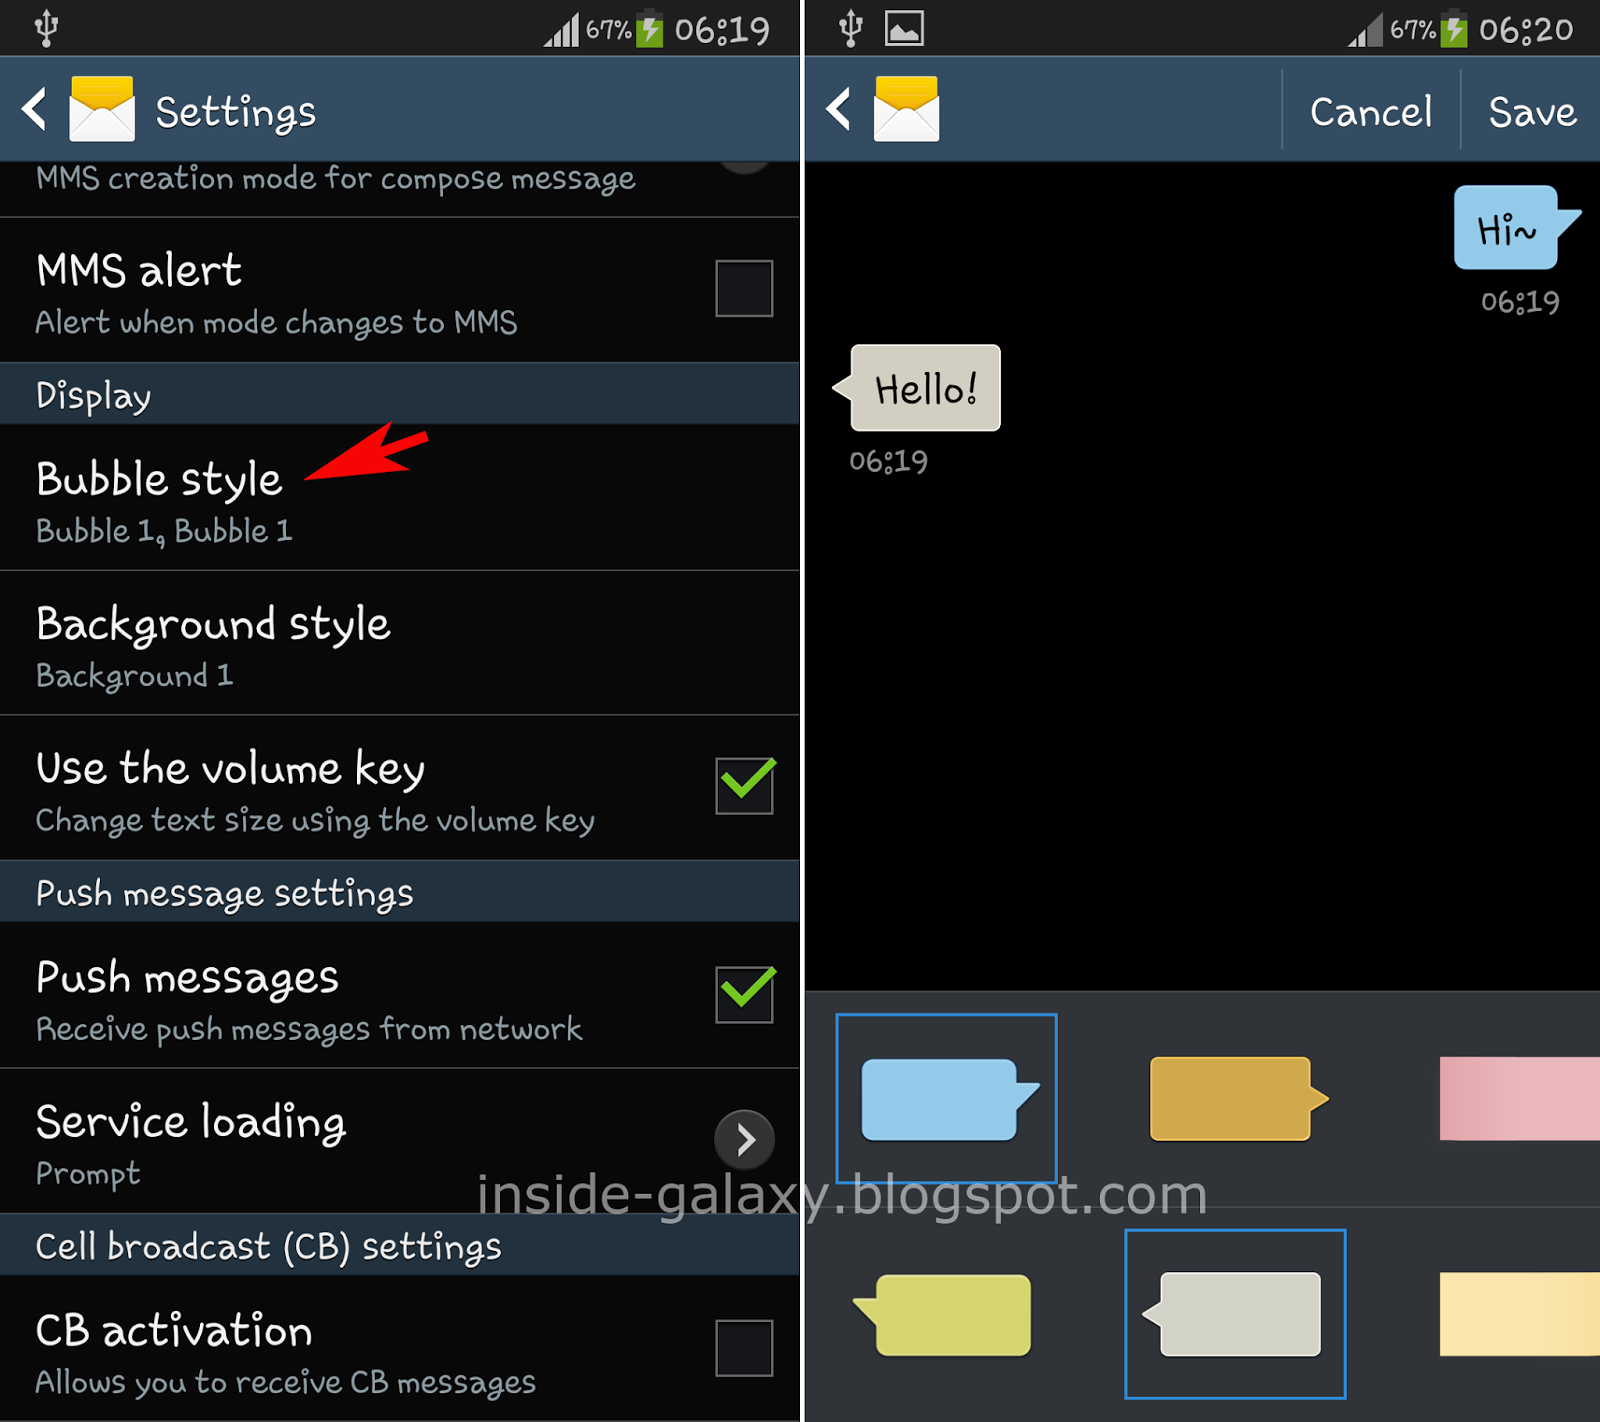 Inside Galaxy Samsung Galaxy S4 How To Change Bubble And Background Style In Messaging App